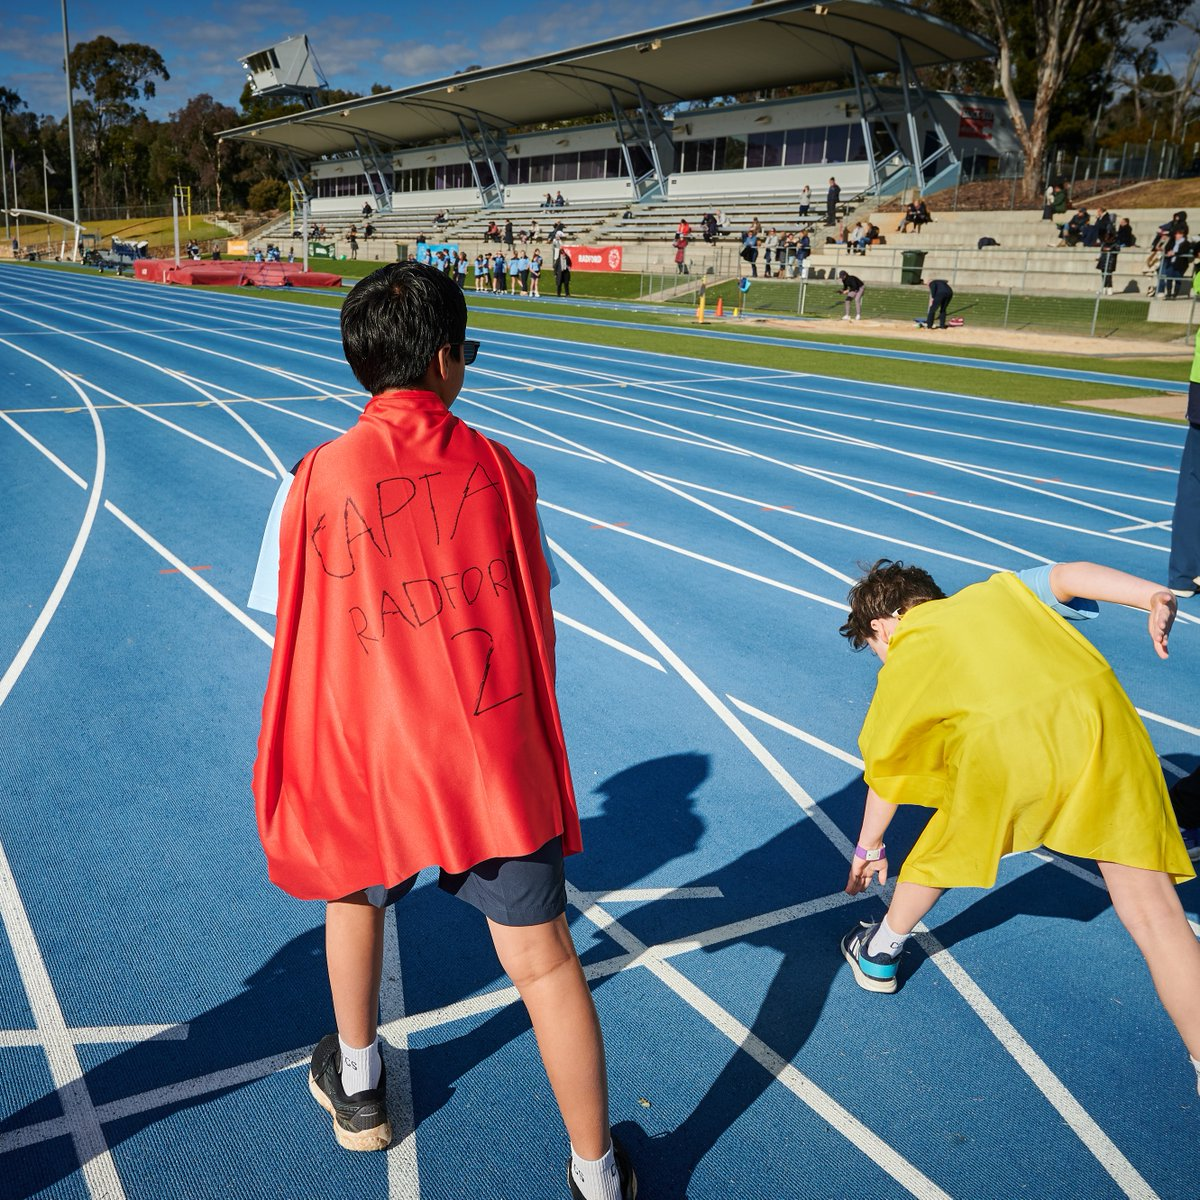 Fantastic spirit as always, at the CGS Primary School Athletics Carnival, held @theAIS. Big congratulations to everyone involved. It was a great day.